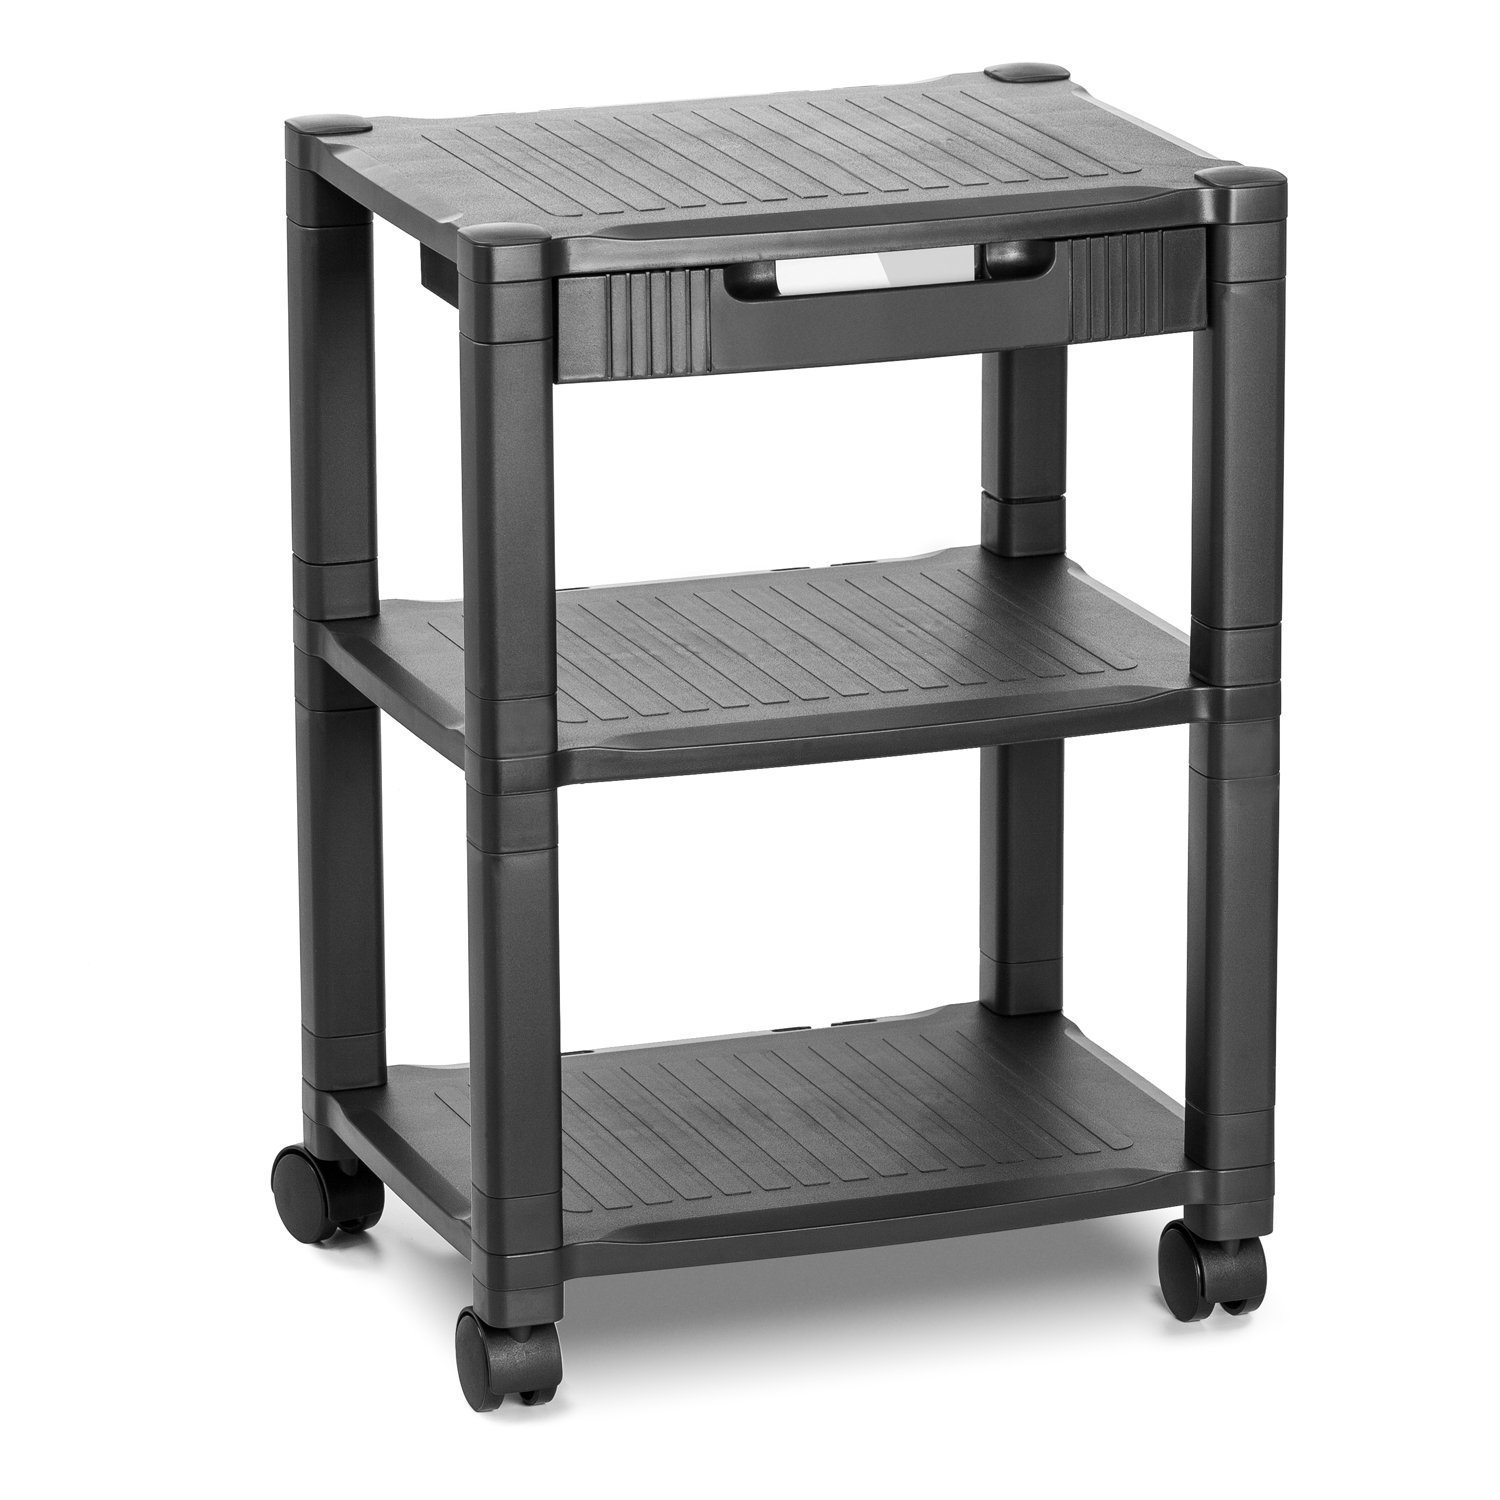 Halter LZ-308 Rolling Printer Cart Machine Stand with Cable Management 2 Pack Holds Up to 75 Pounds Black